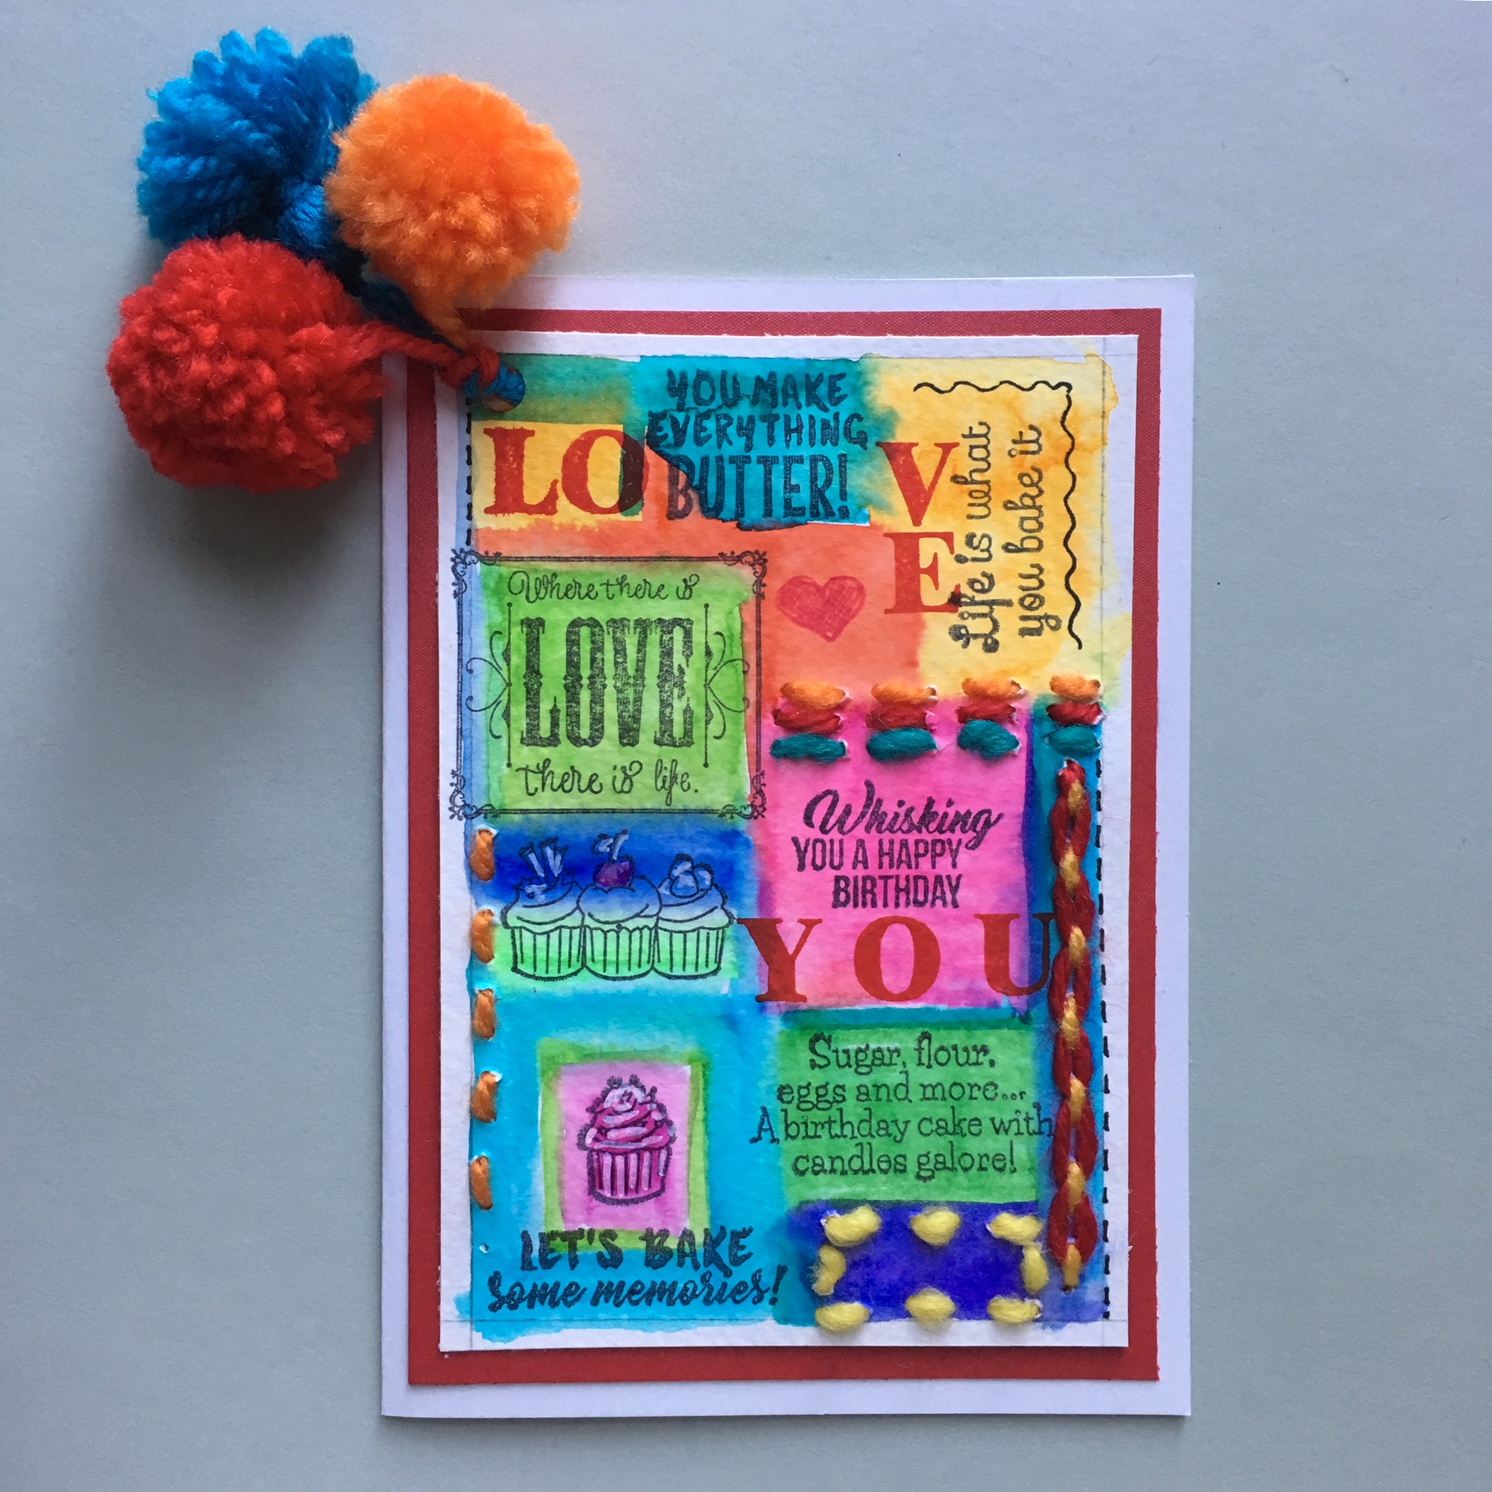 completed Hippie greeting card